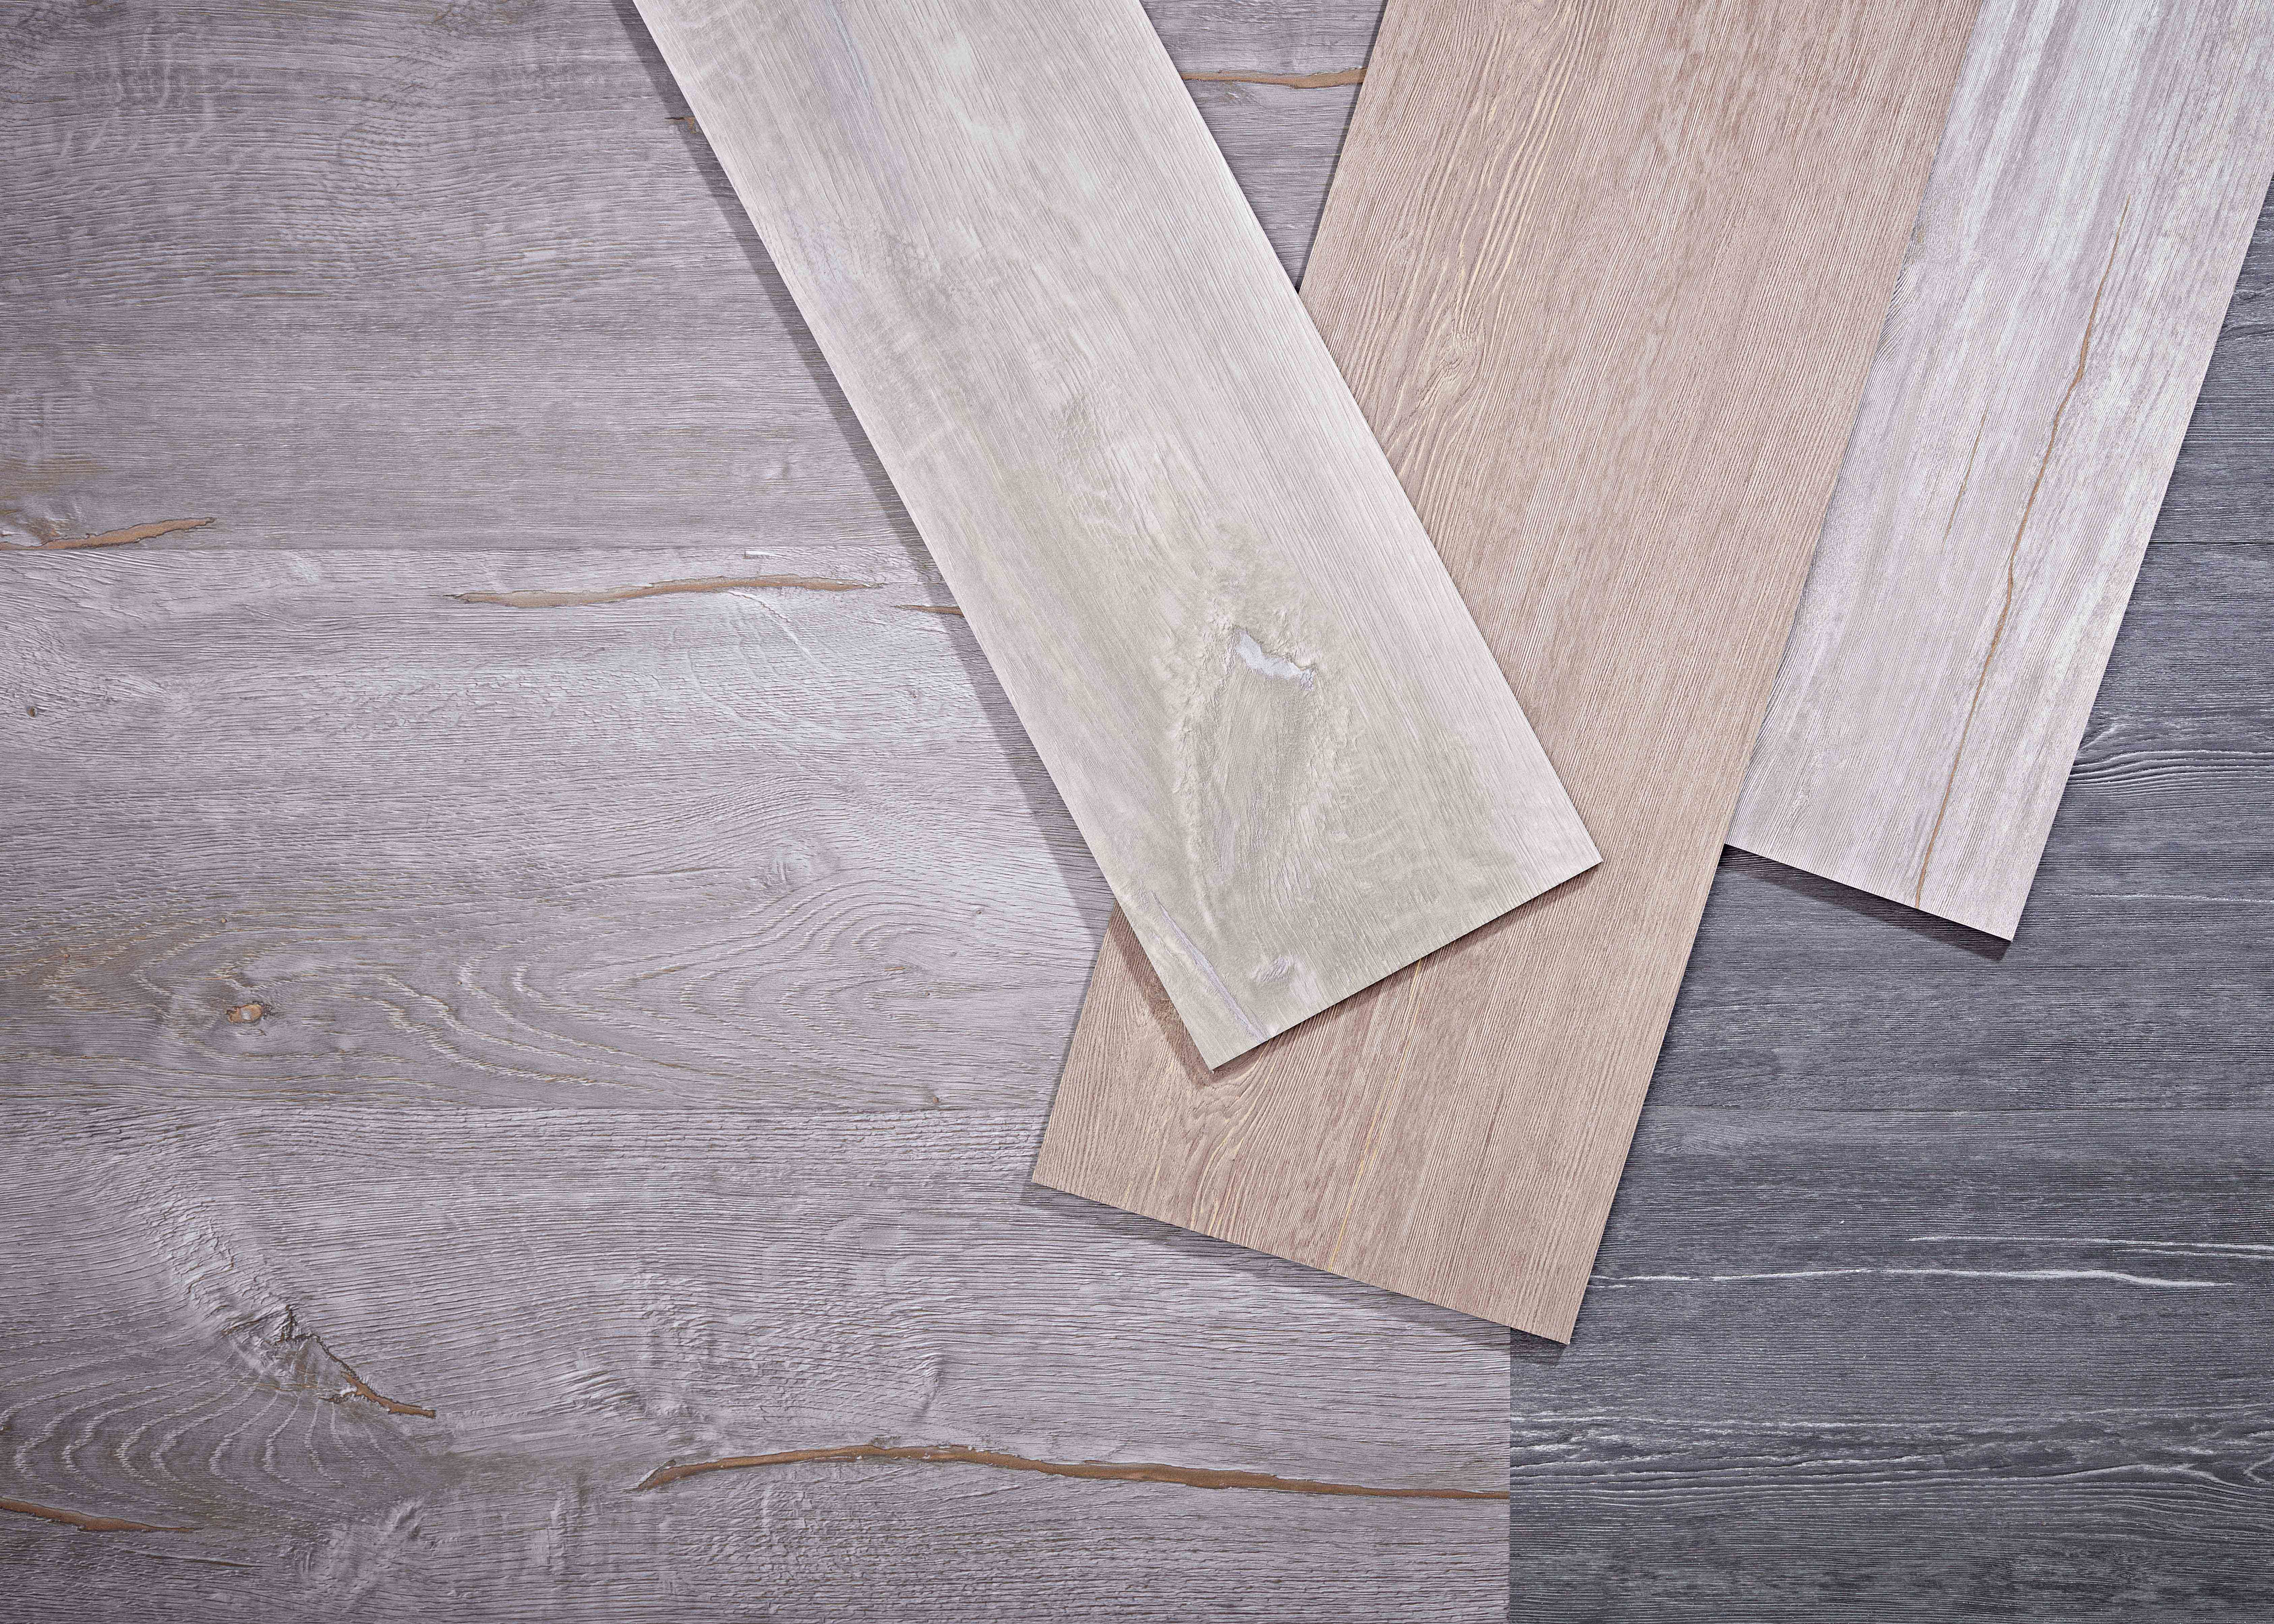 Splitwood Highlighting Natural Imperfections With Innovative